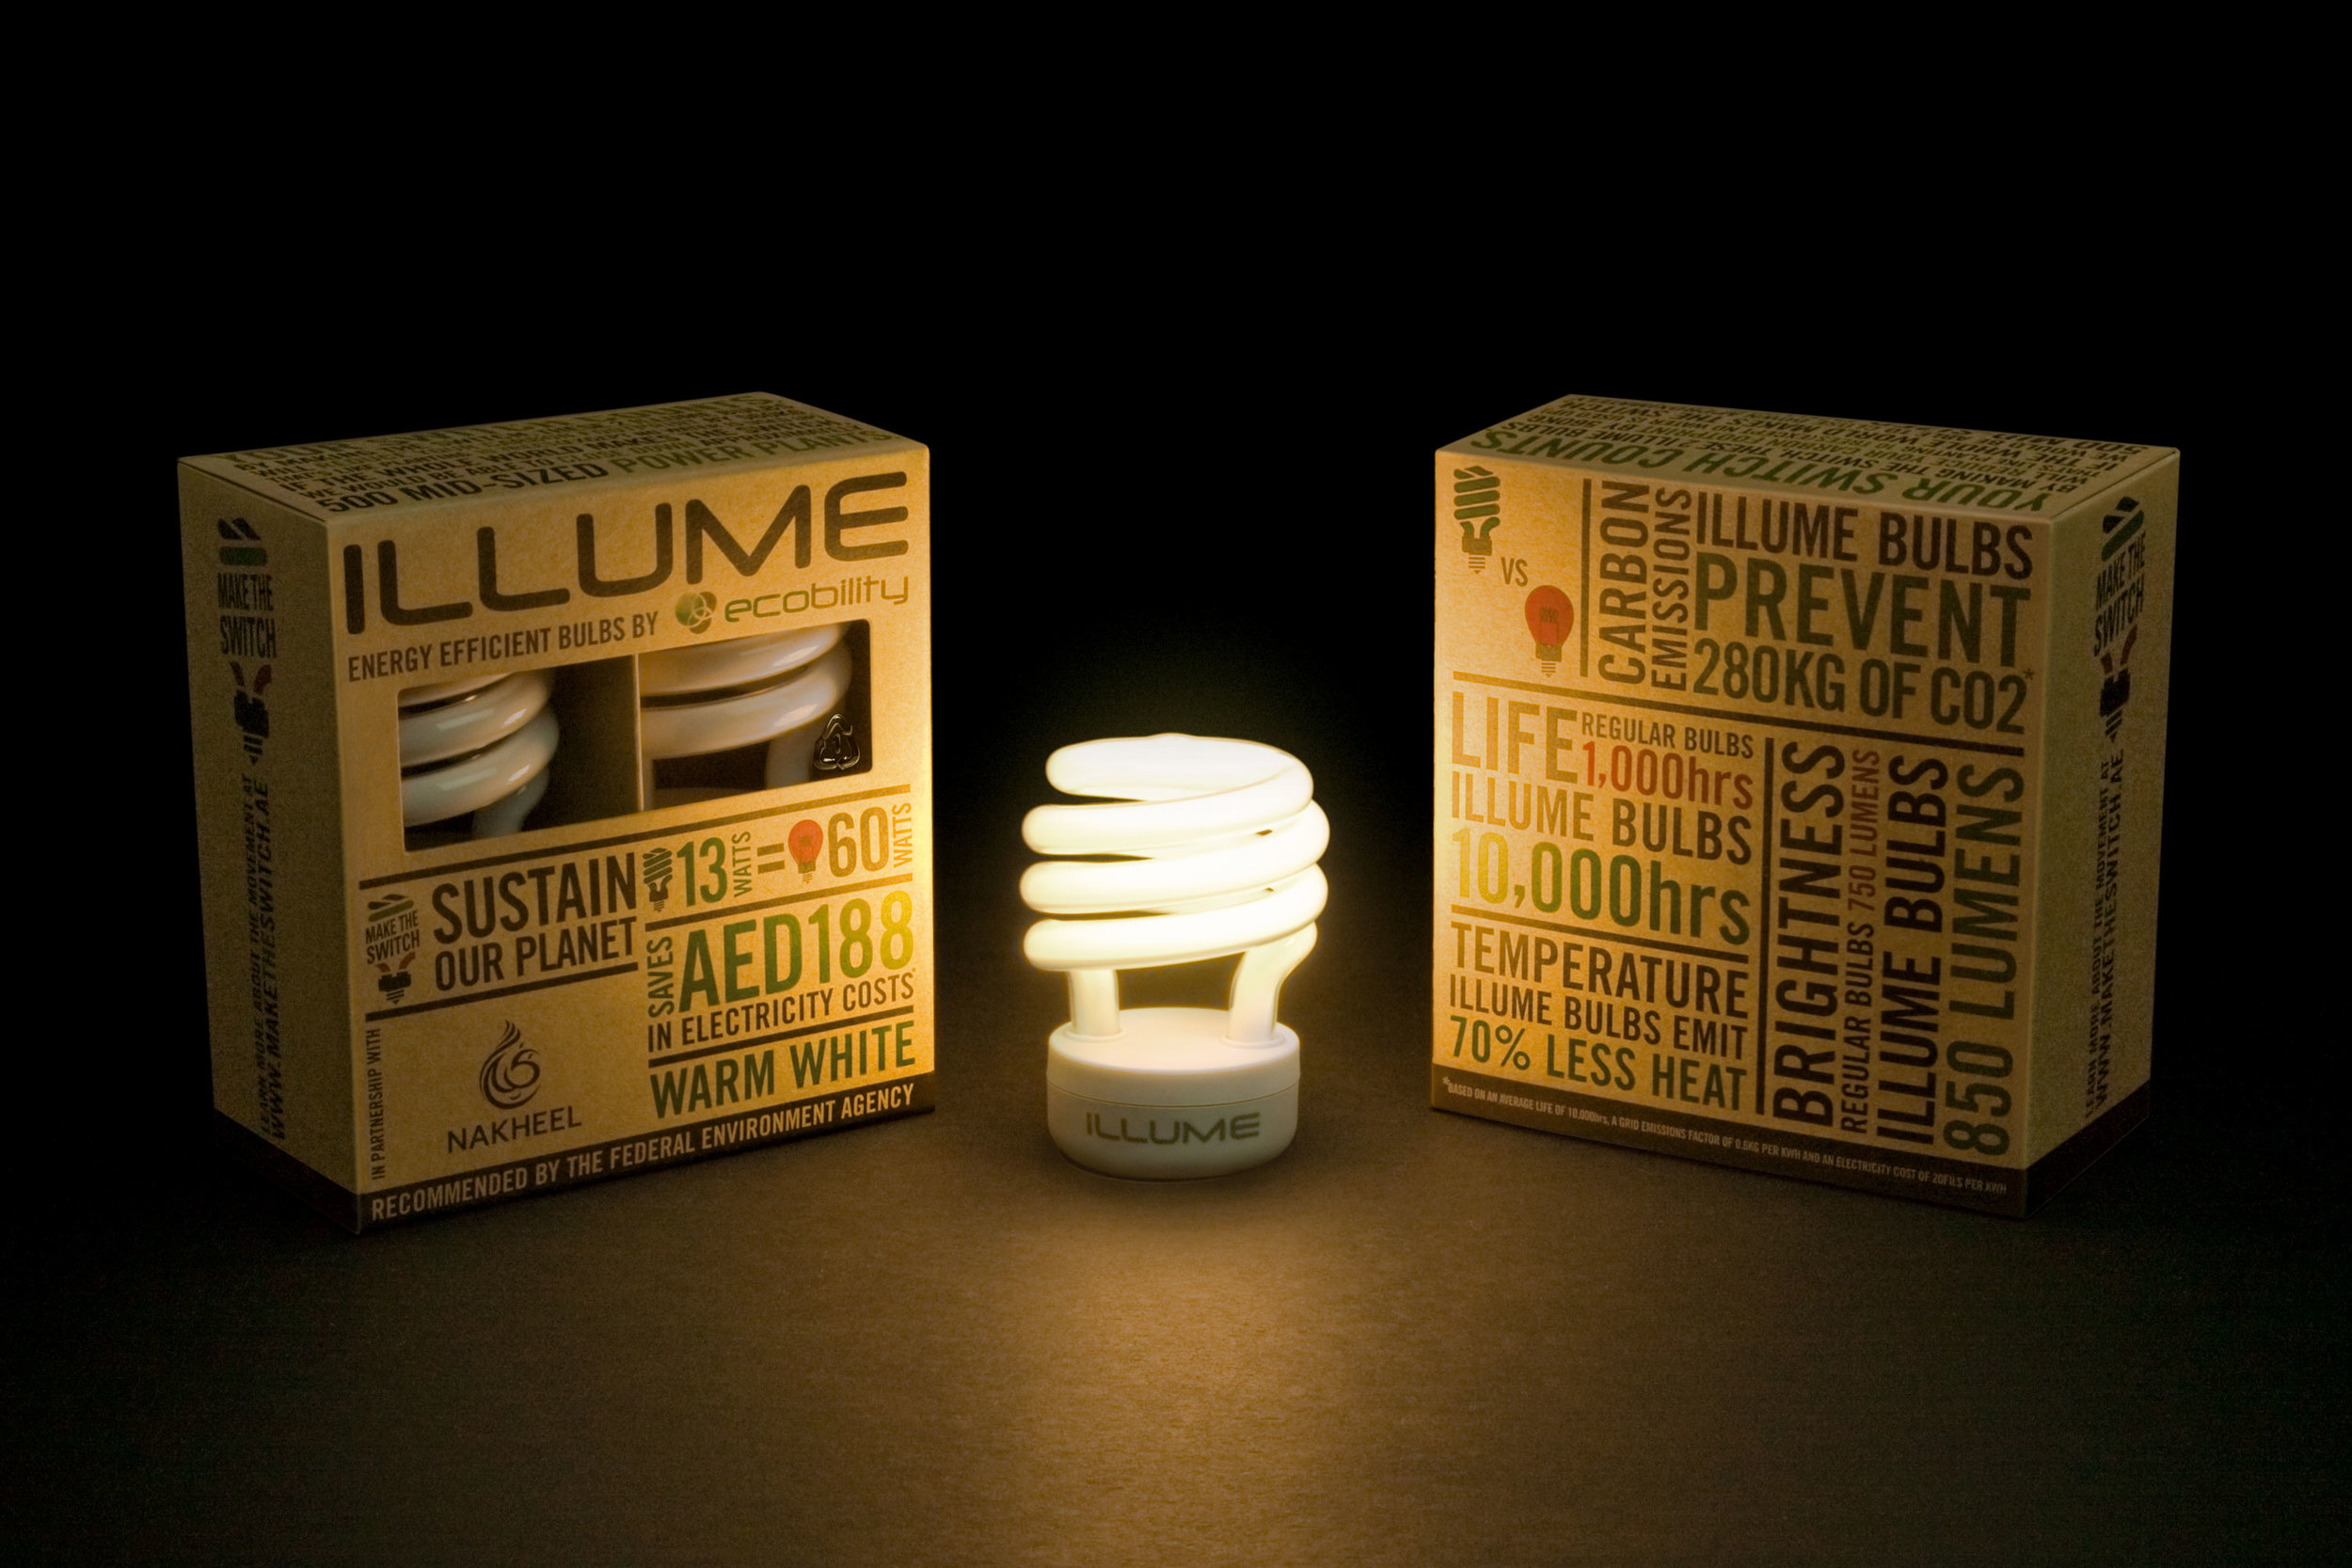 Illume bulbs were only sold in twin packs.